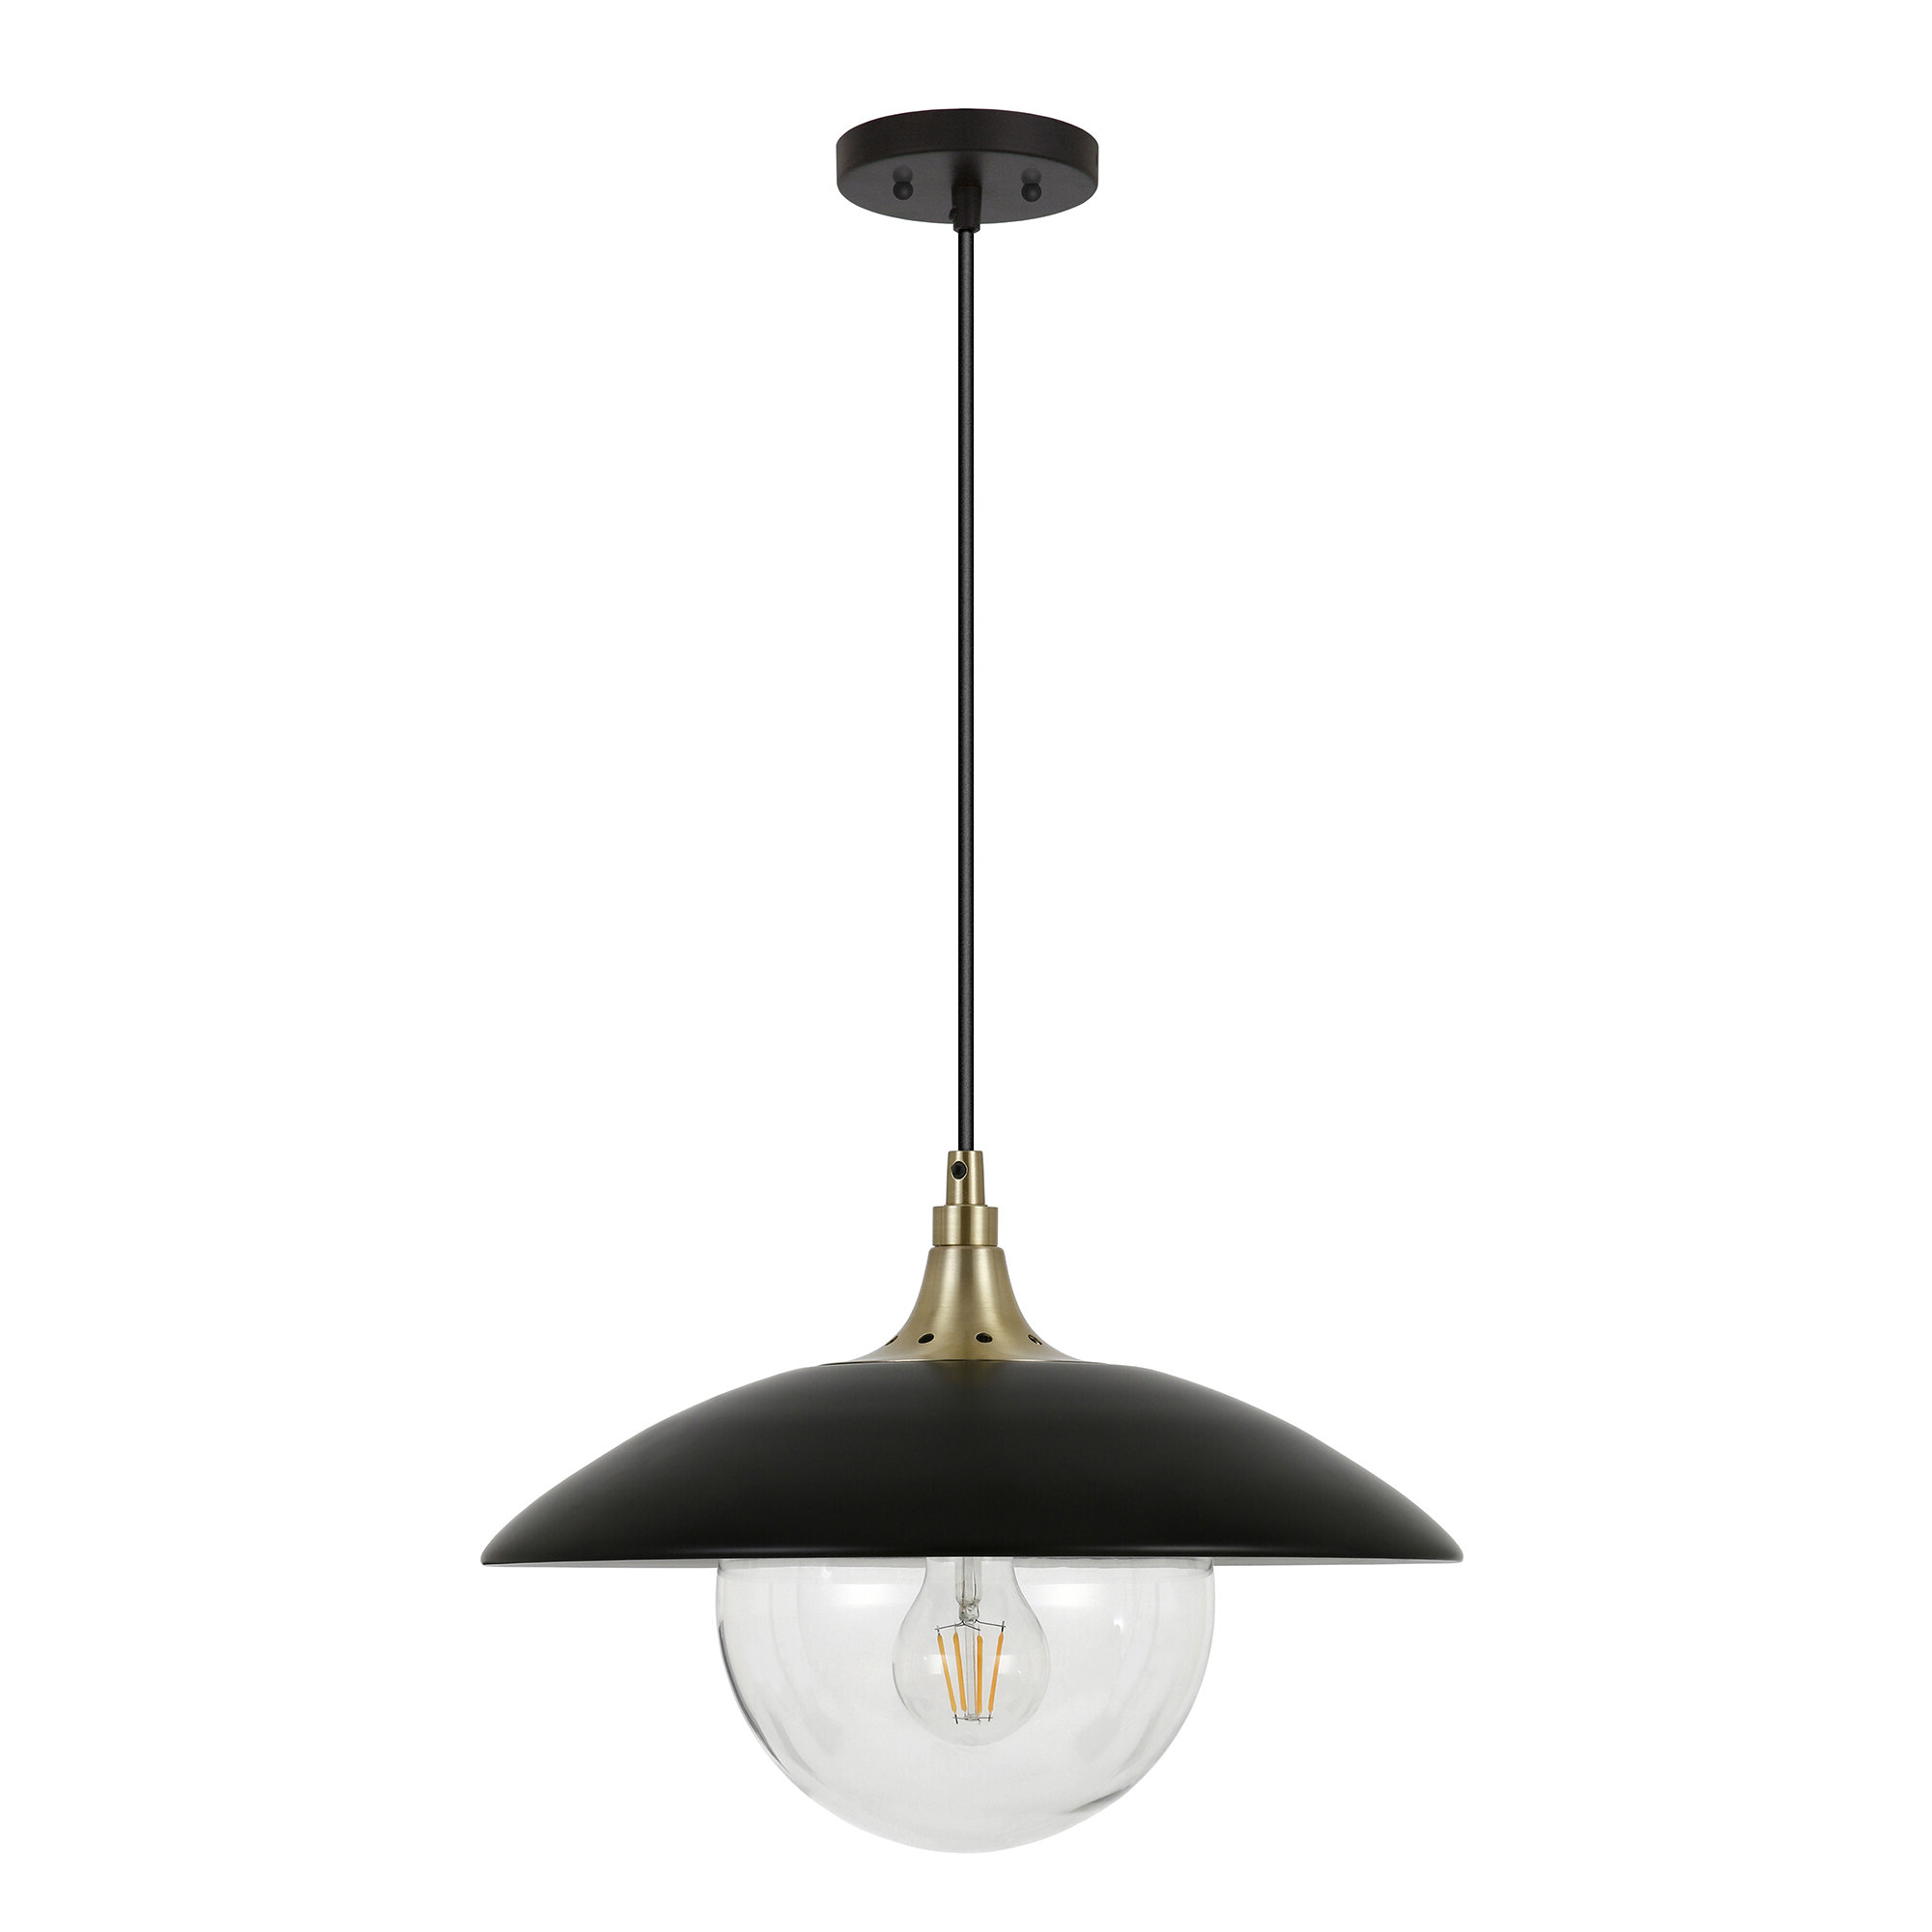 Famous Deveraux 1 Light Single Dome Pendant With Regard To Devereaux 1 Light Single Globe Pendants (Gallery 2 of 20)